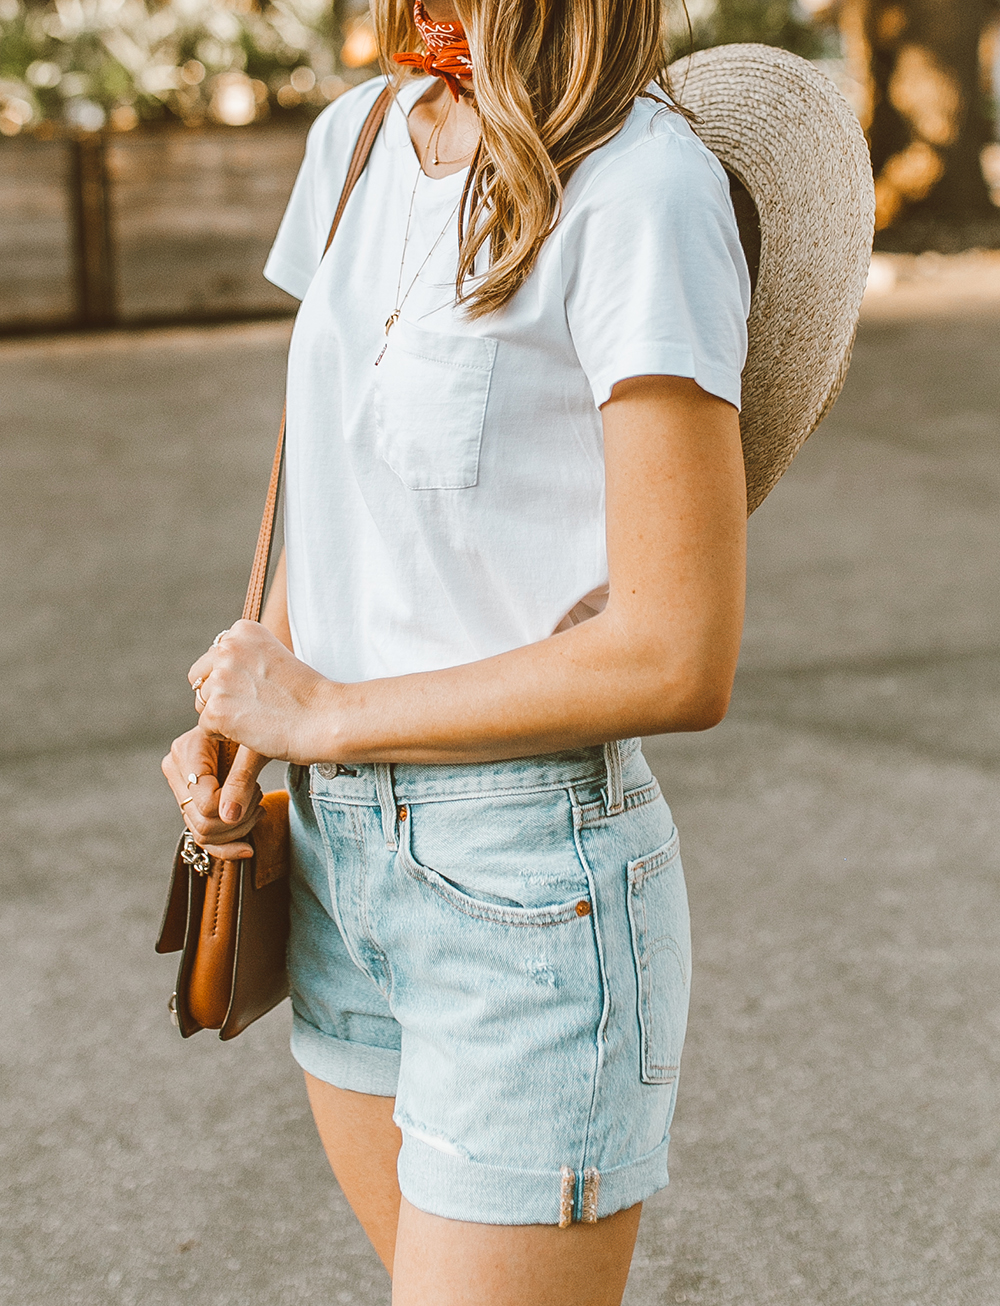 livvyland-blog-olivia-watson-austin-texas-fashion-style-blogger-what-to-wear-levis-501-denim-shorts-festival-outfit-idea-12